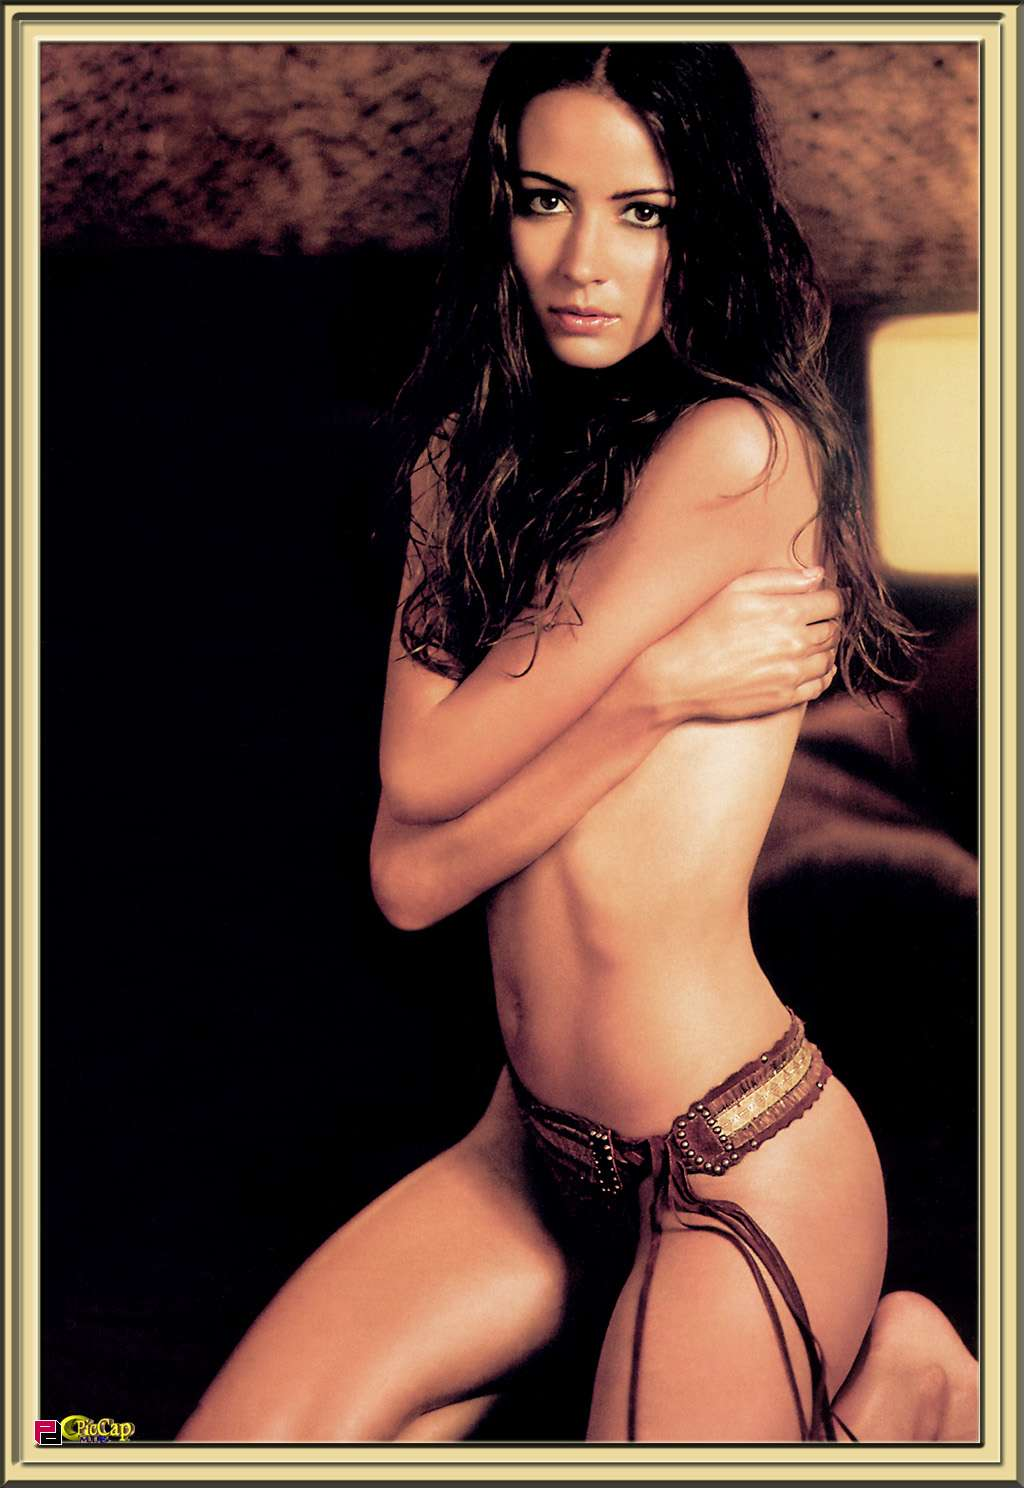 Amy Acker Nude Photos Amazing amy acker nude pictures. rating = 8.62/10 | colibri-tour.ru